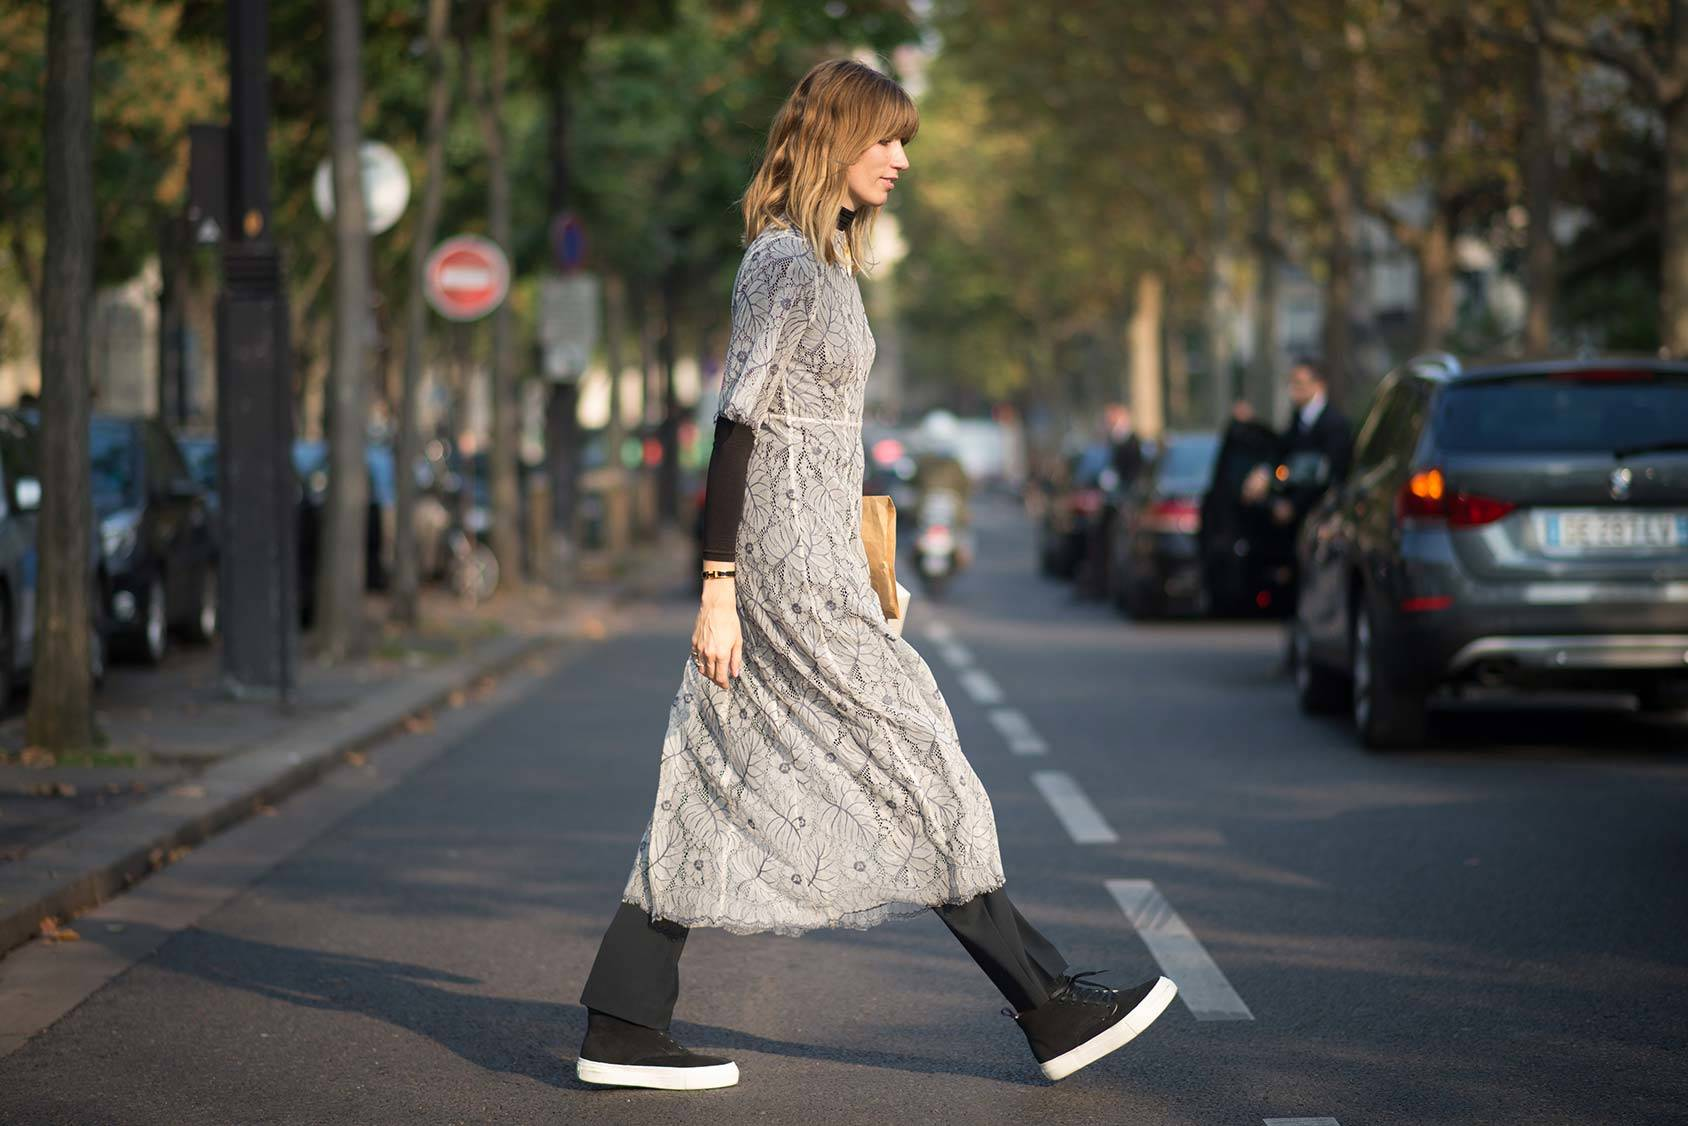 German street style star Veronika Heilbrunner, Getty Images.